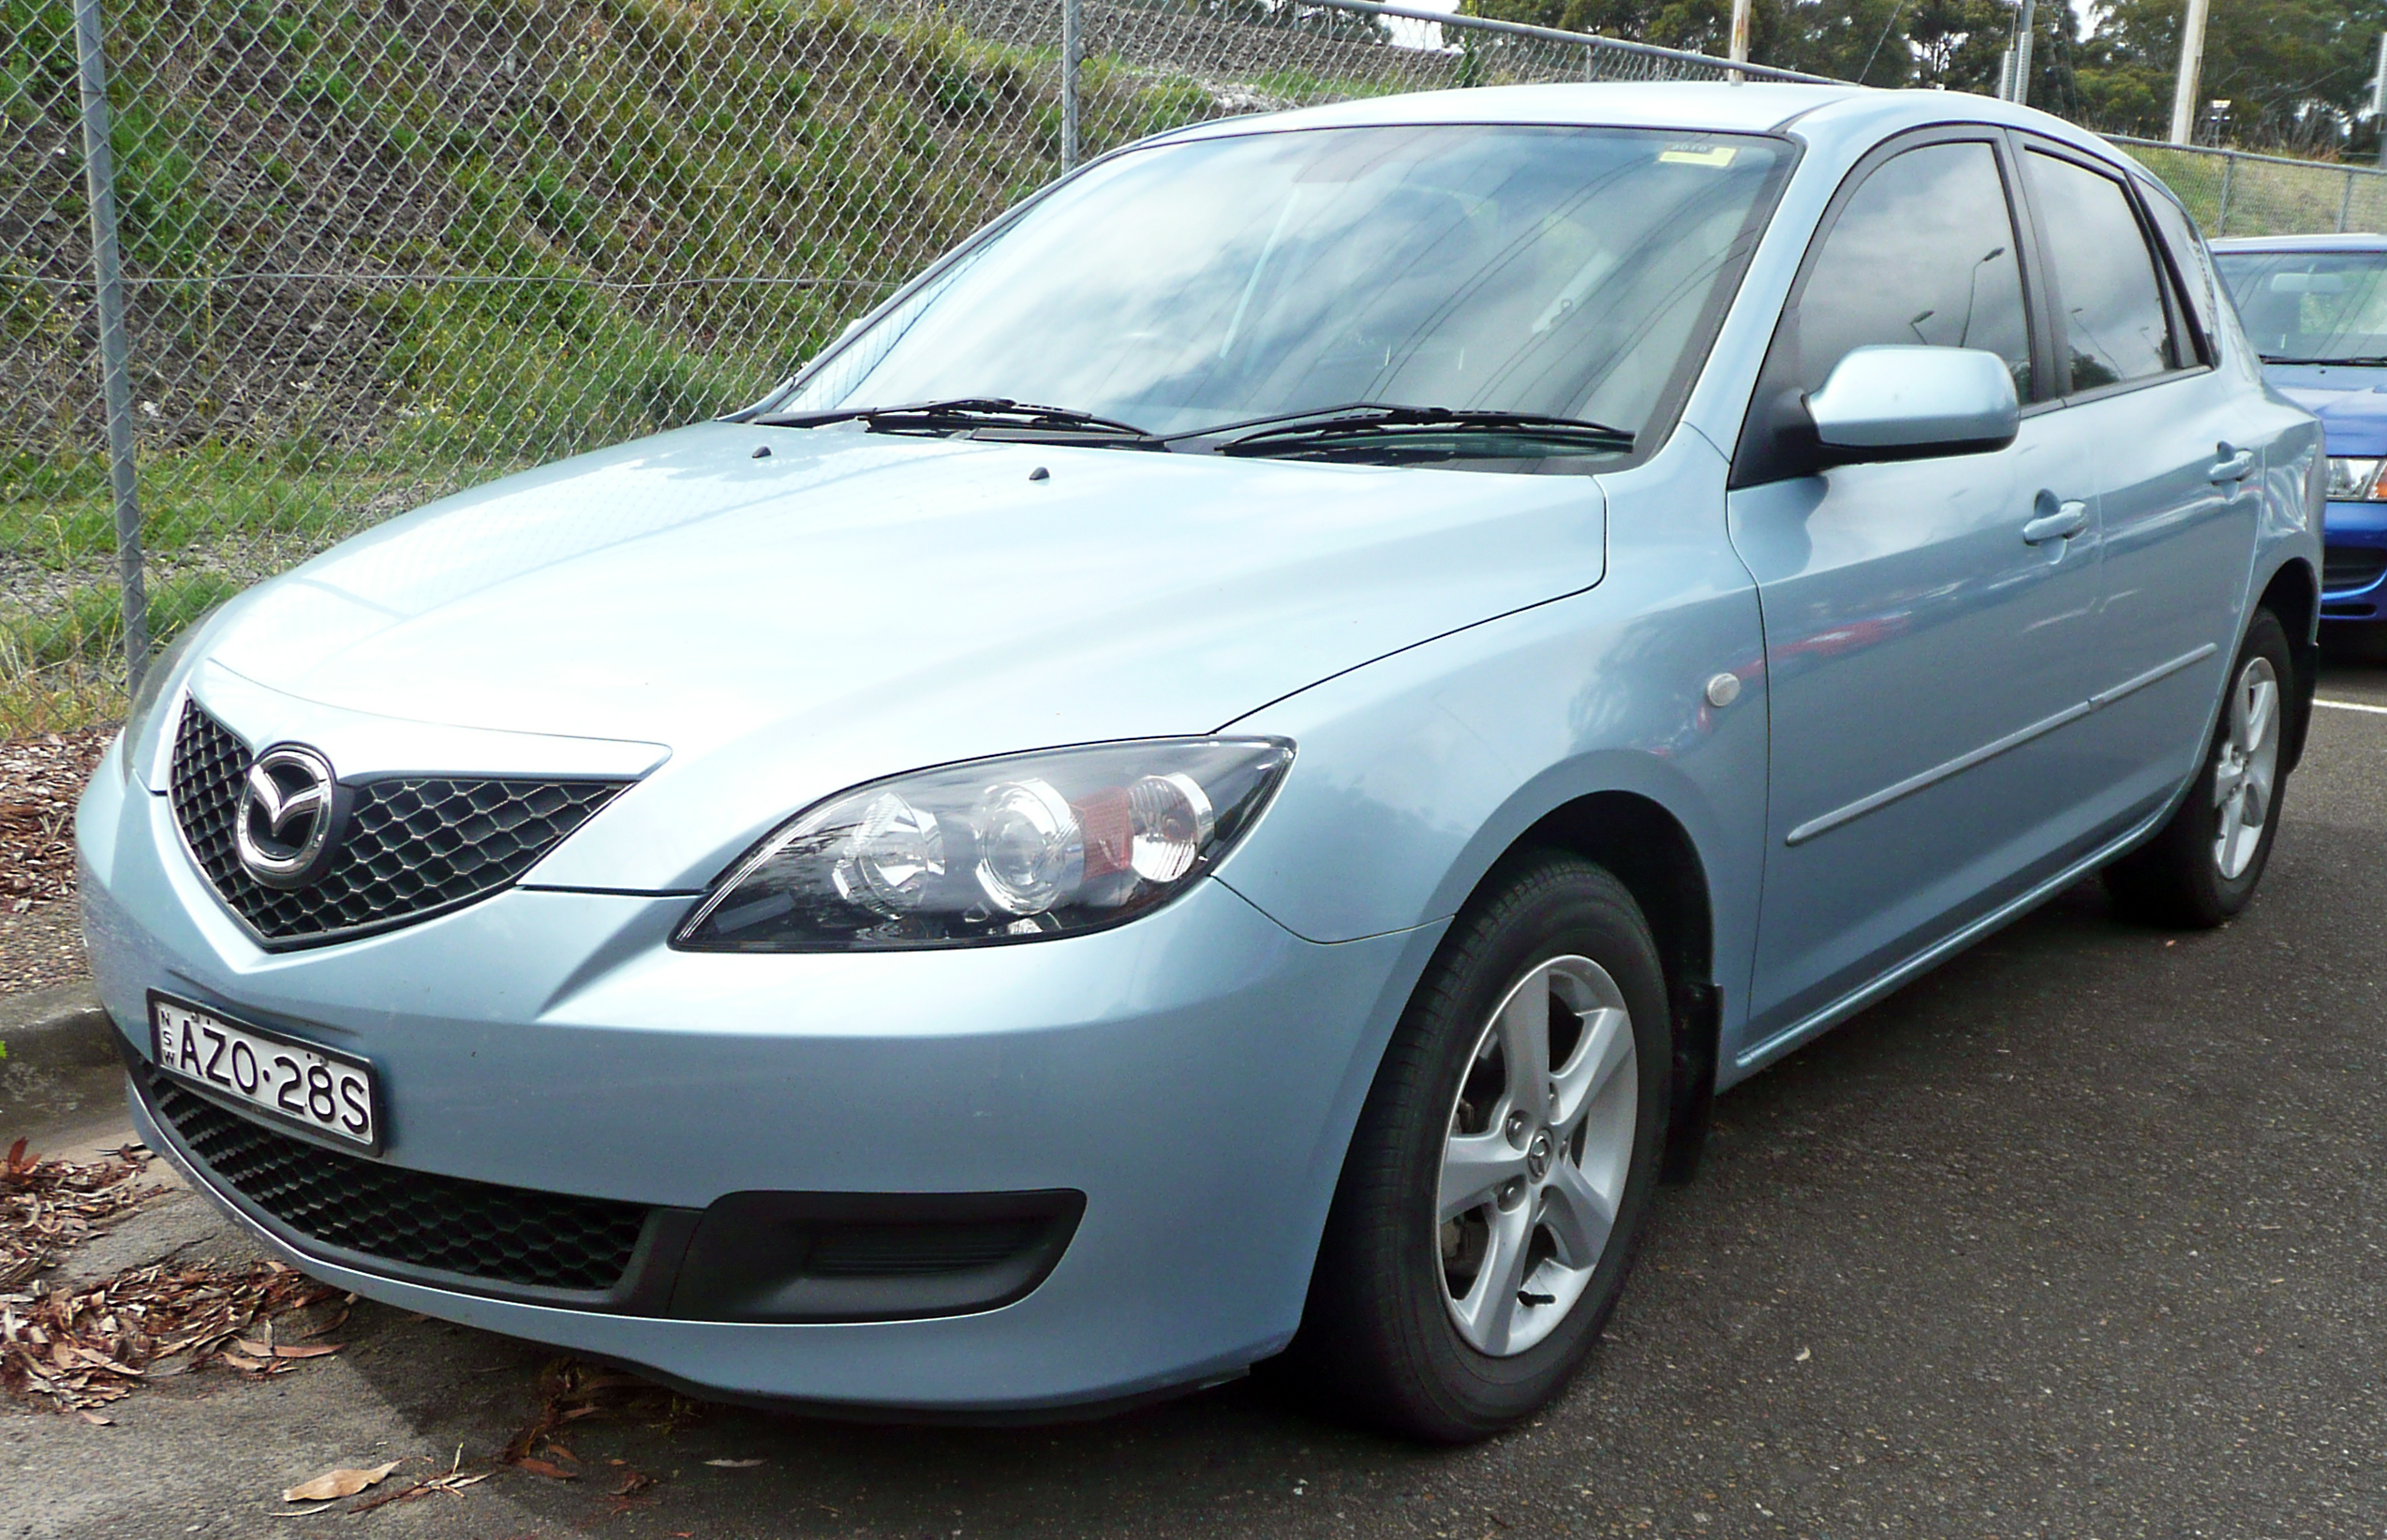 sale pics forum showthread jpg for page sedan mazda attachment